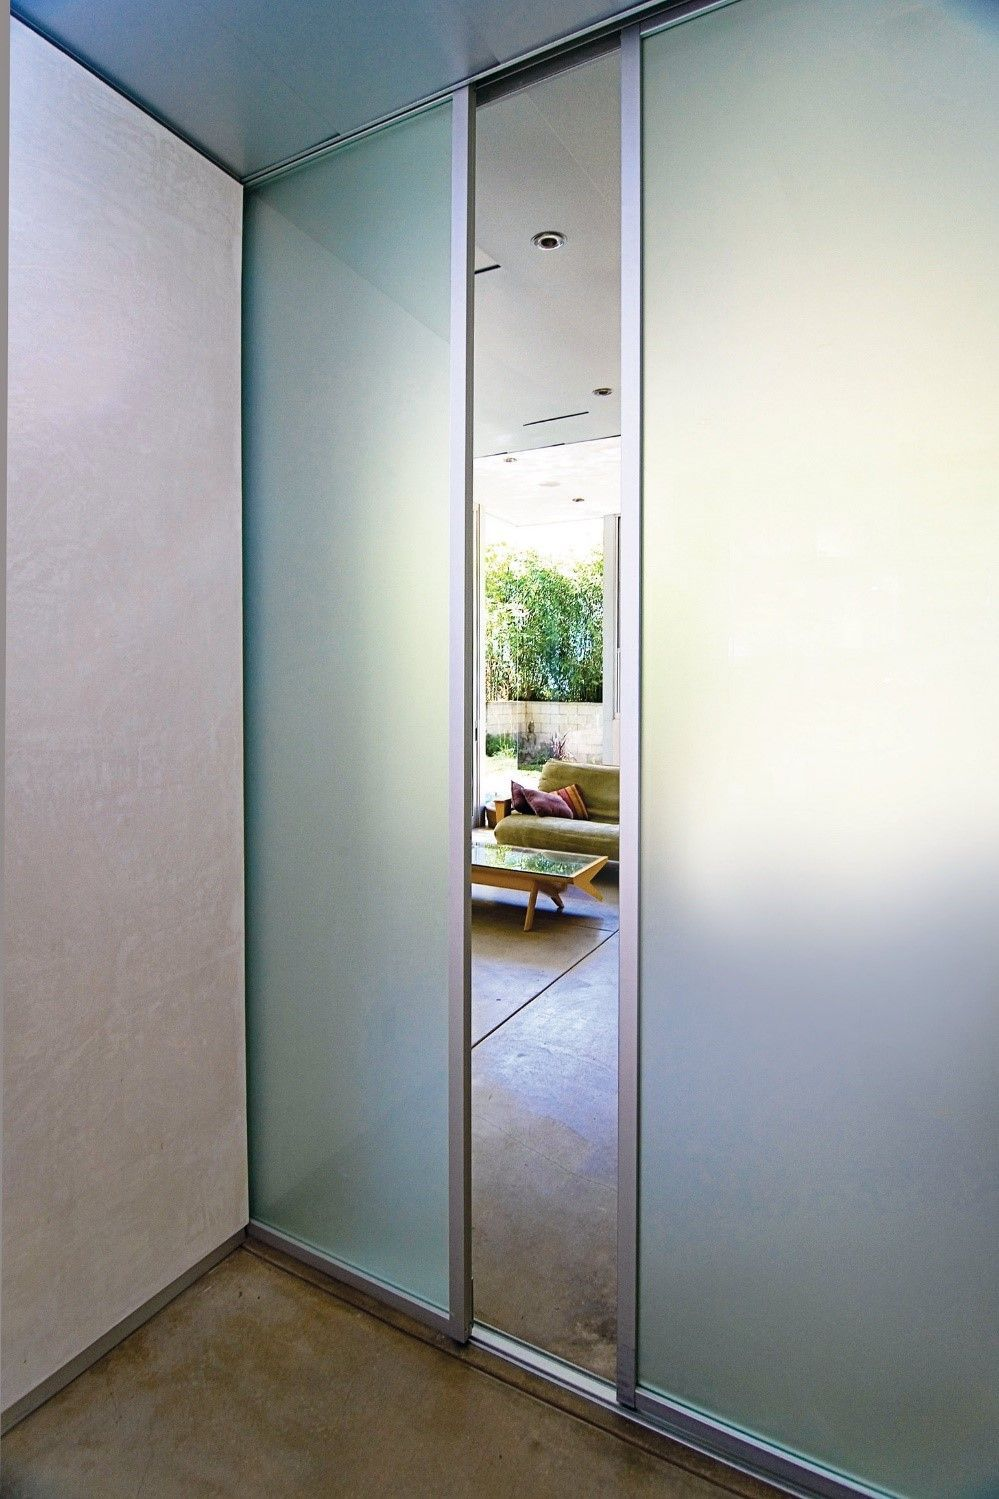 Frosted glass room dividers separate space but allow natural